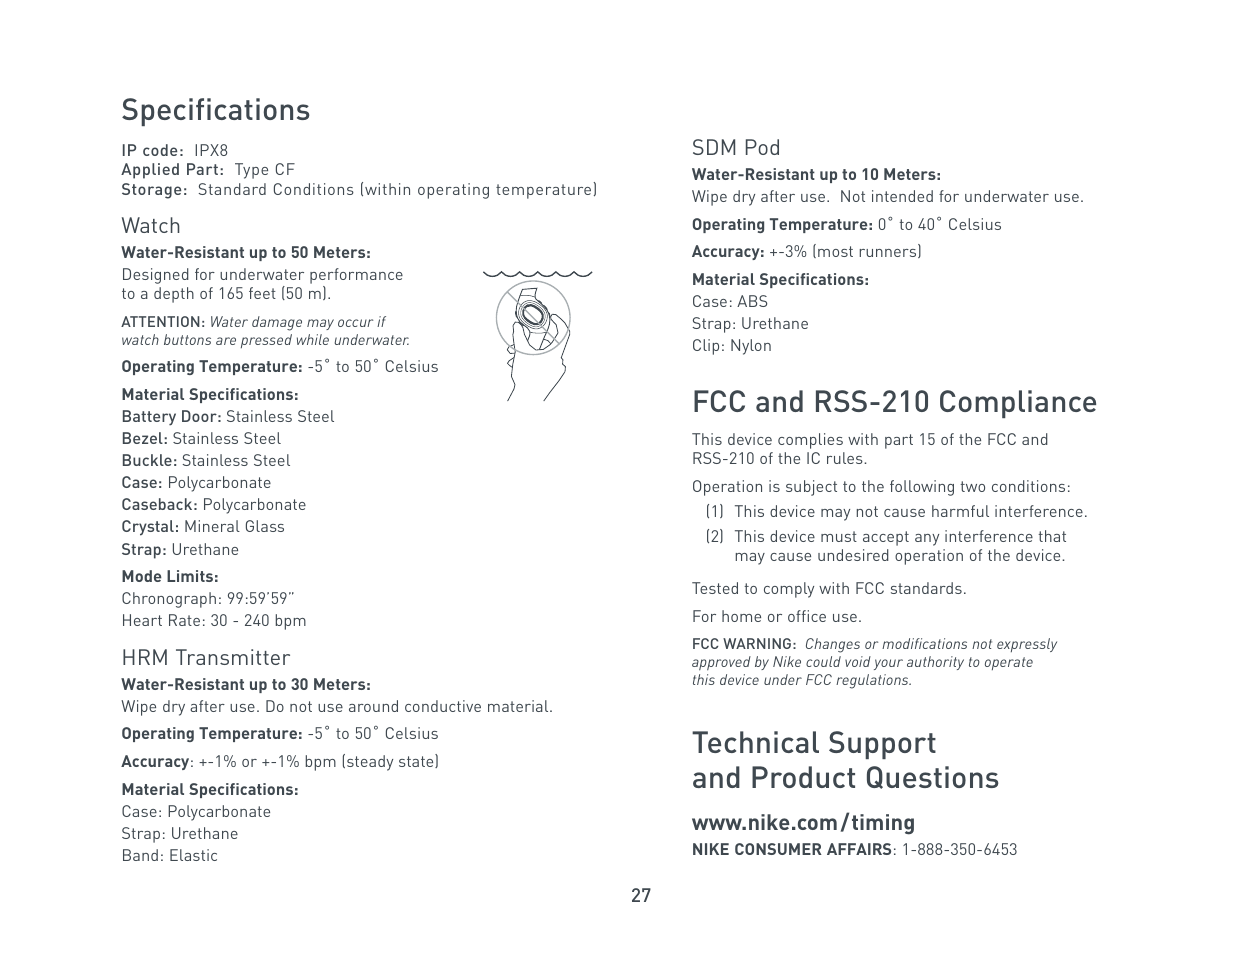 Specifications, Fcc and rss-210 compliance, Technical support and